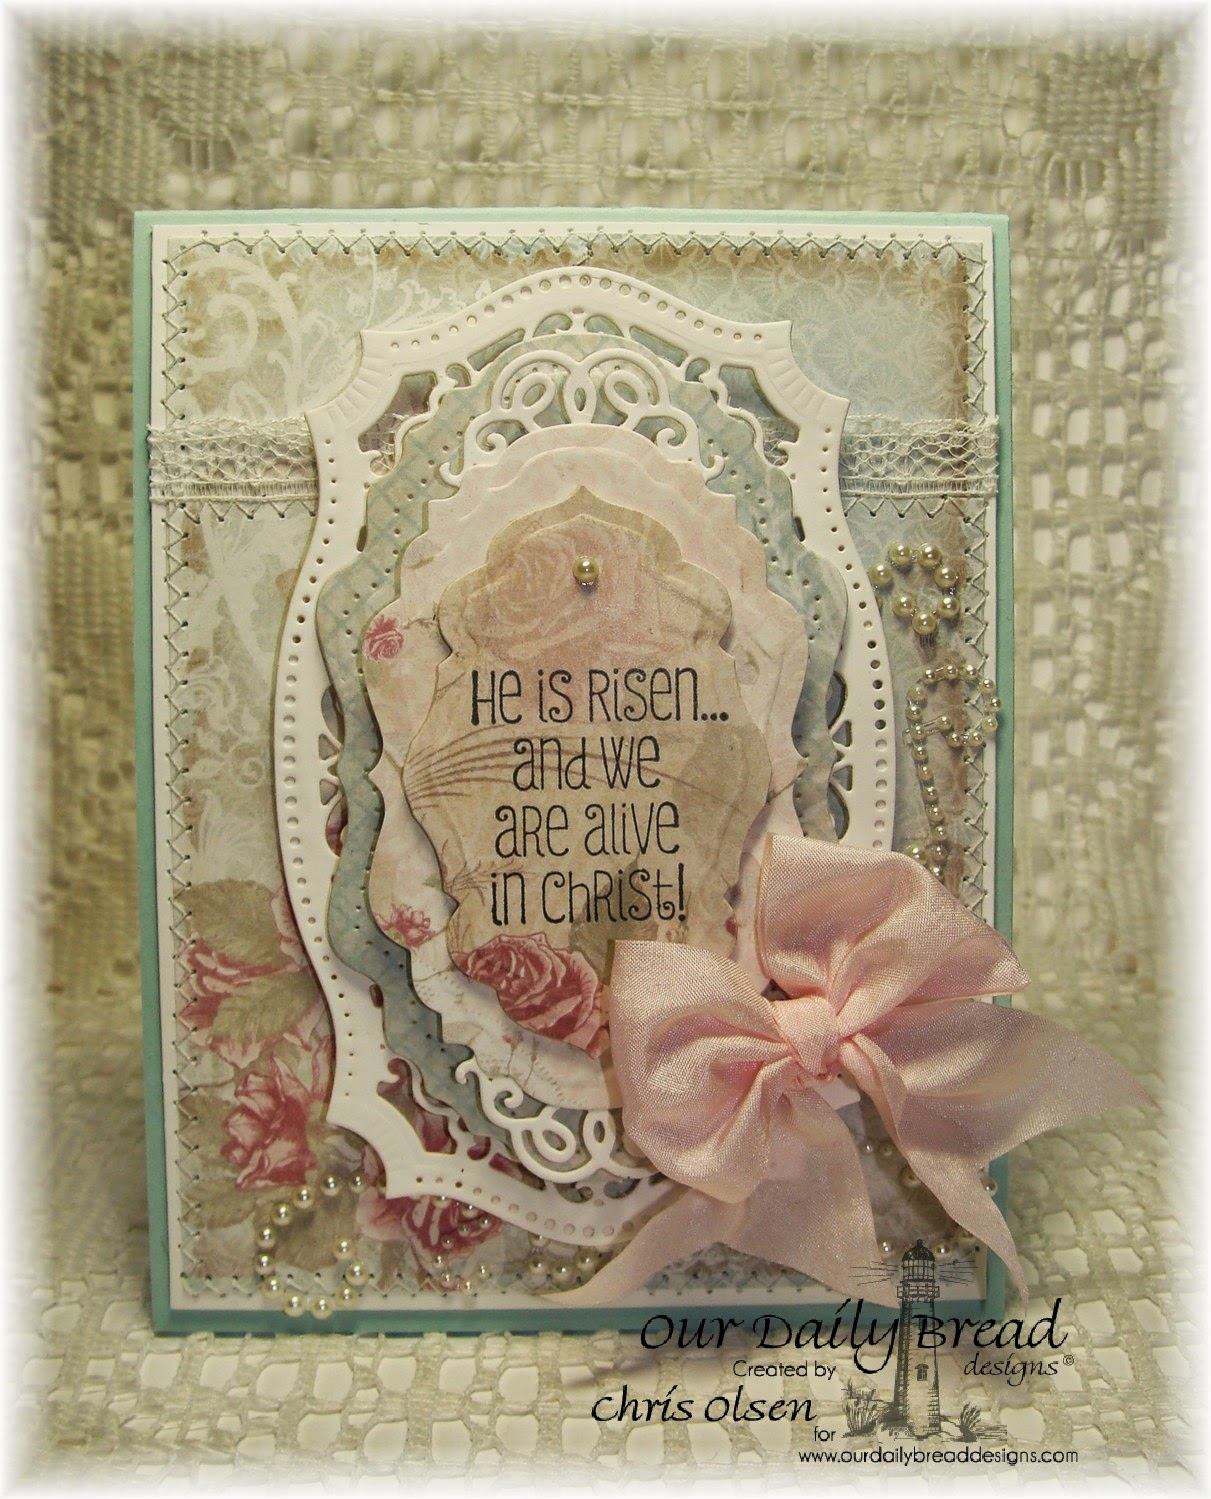 Our Daily Bread Designs, Antique Labels, Vintage Labels die, Vintage Flourish Labels dies, Happy Resurrection Day, Shabby Rose Collection, designer Chris Olsen, Easter